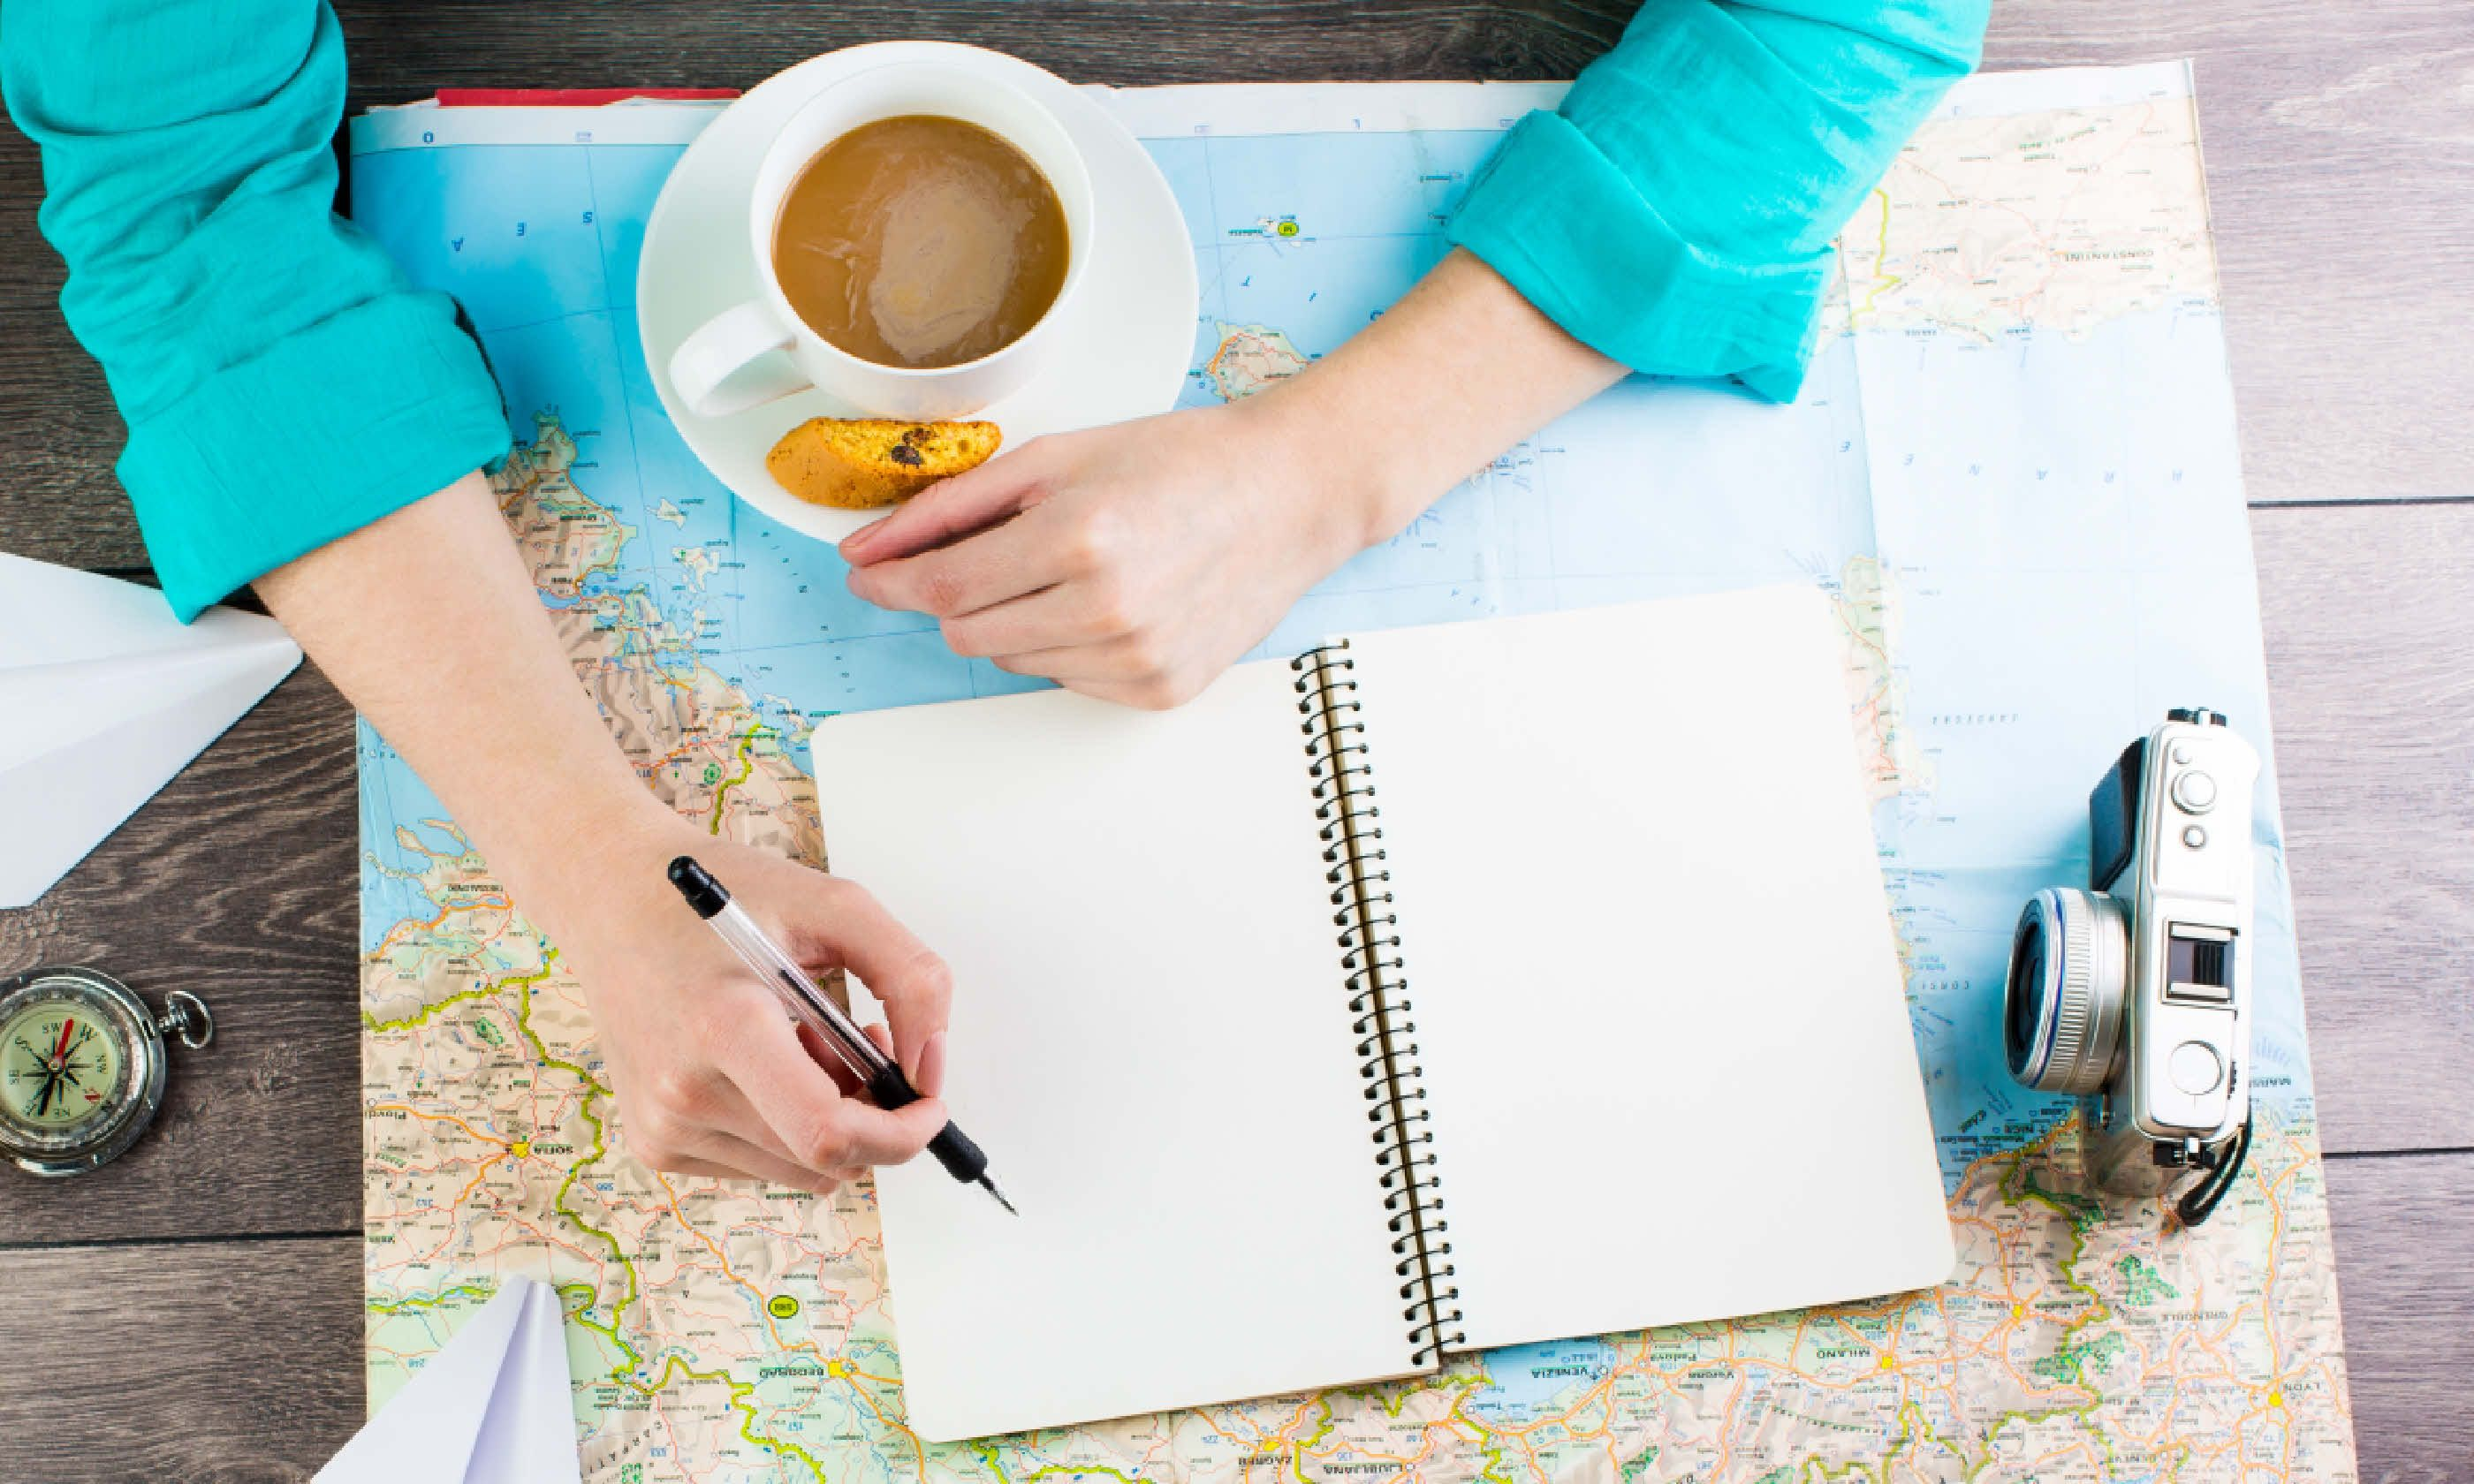 Planning travel (Shutterstock)